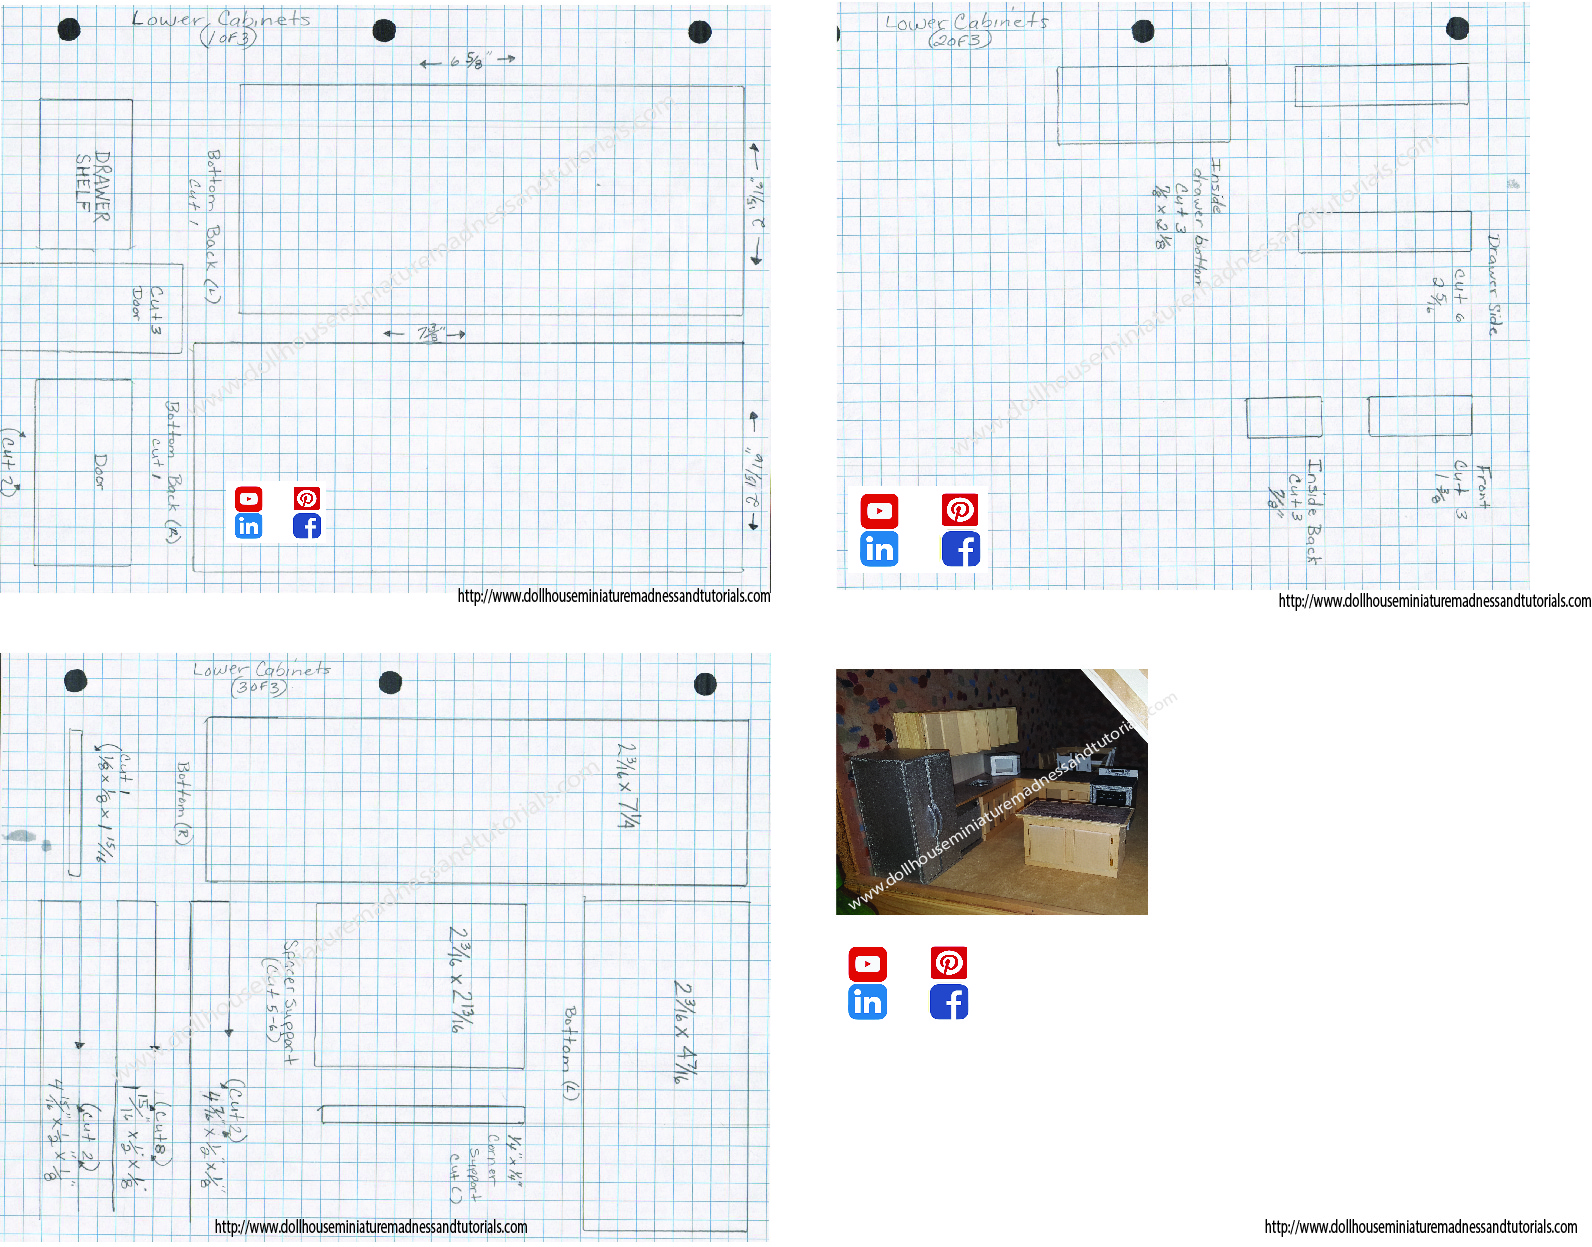 Templates Dollhouse Miniature Madness And Tutorials